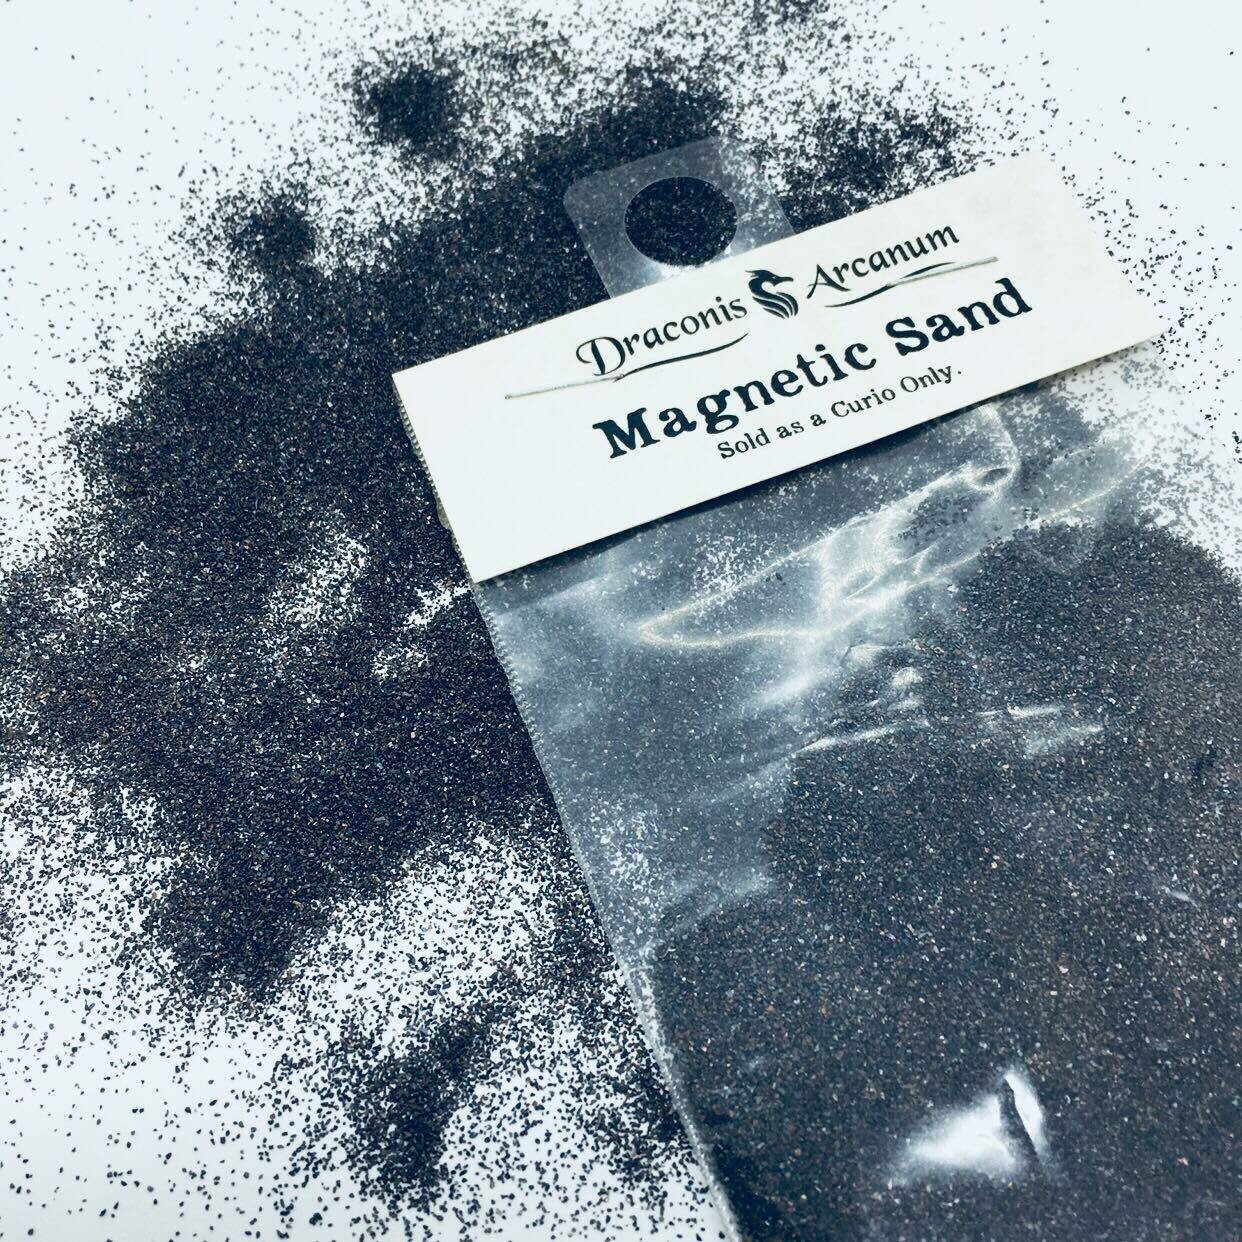 Magnetic Sand